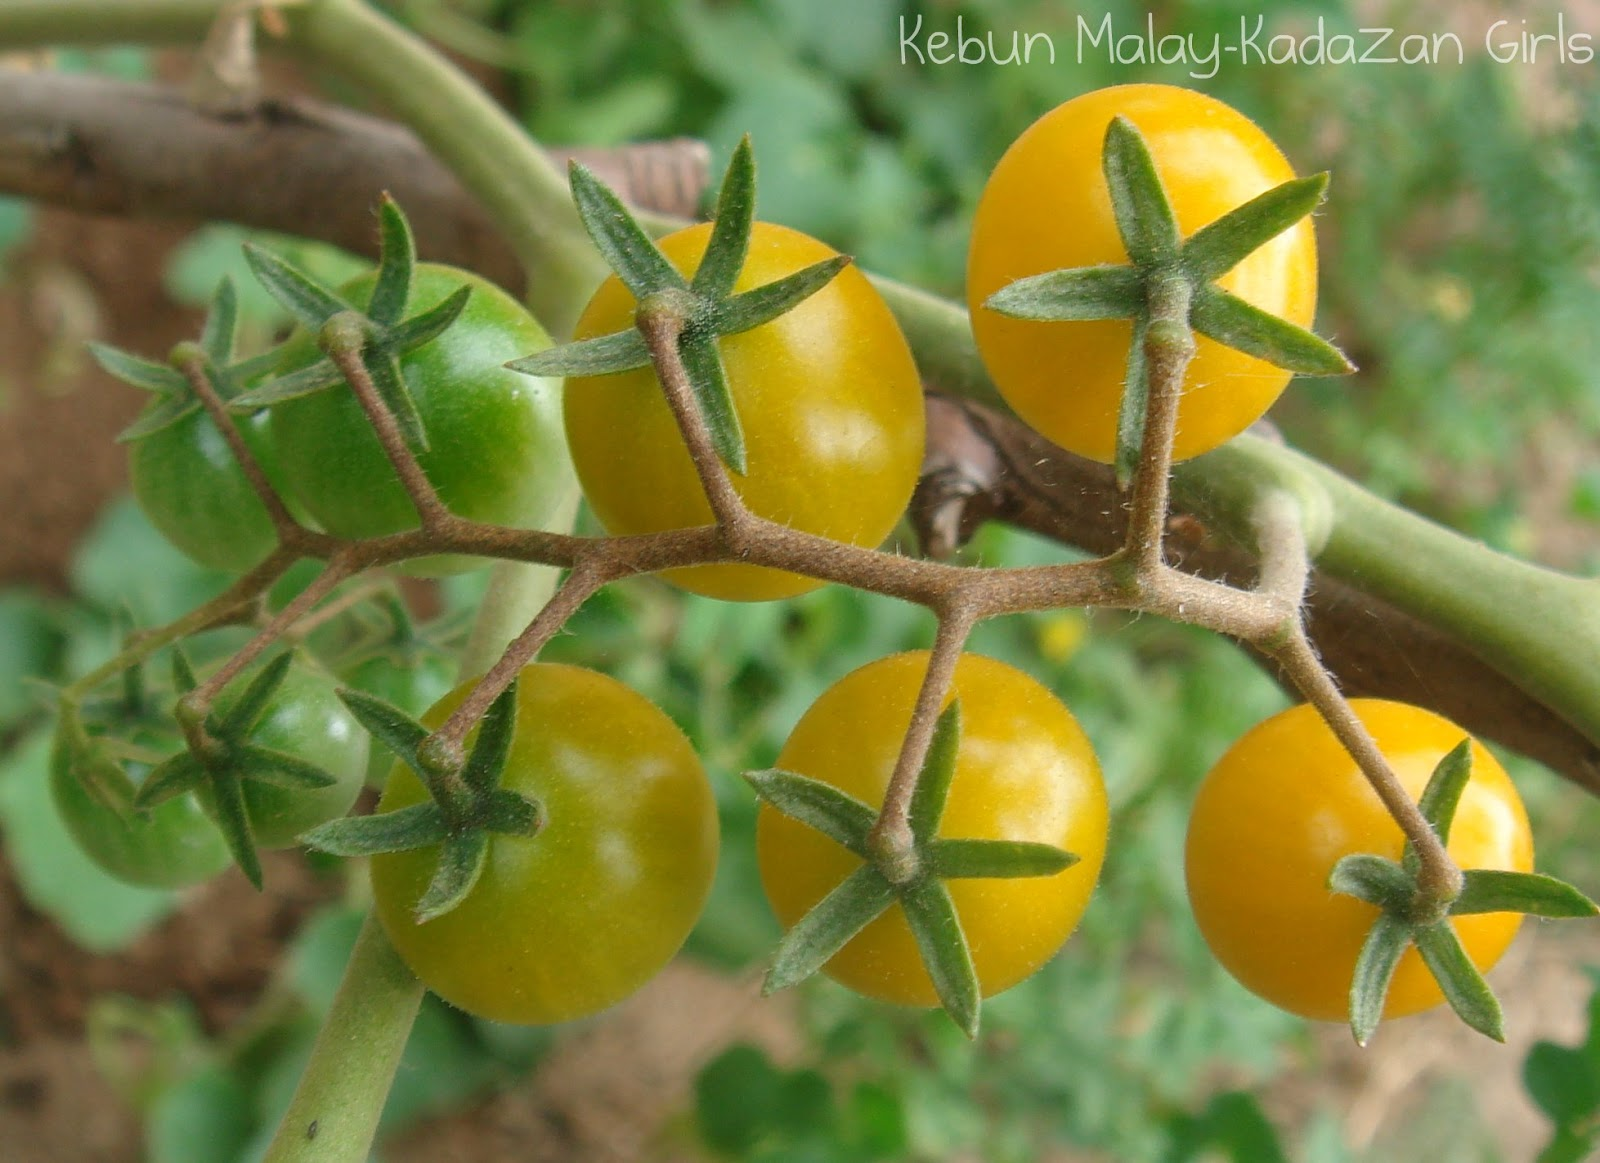 yellow cherry tomatoes - photo #41